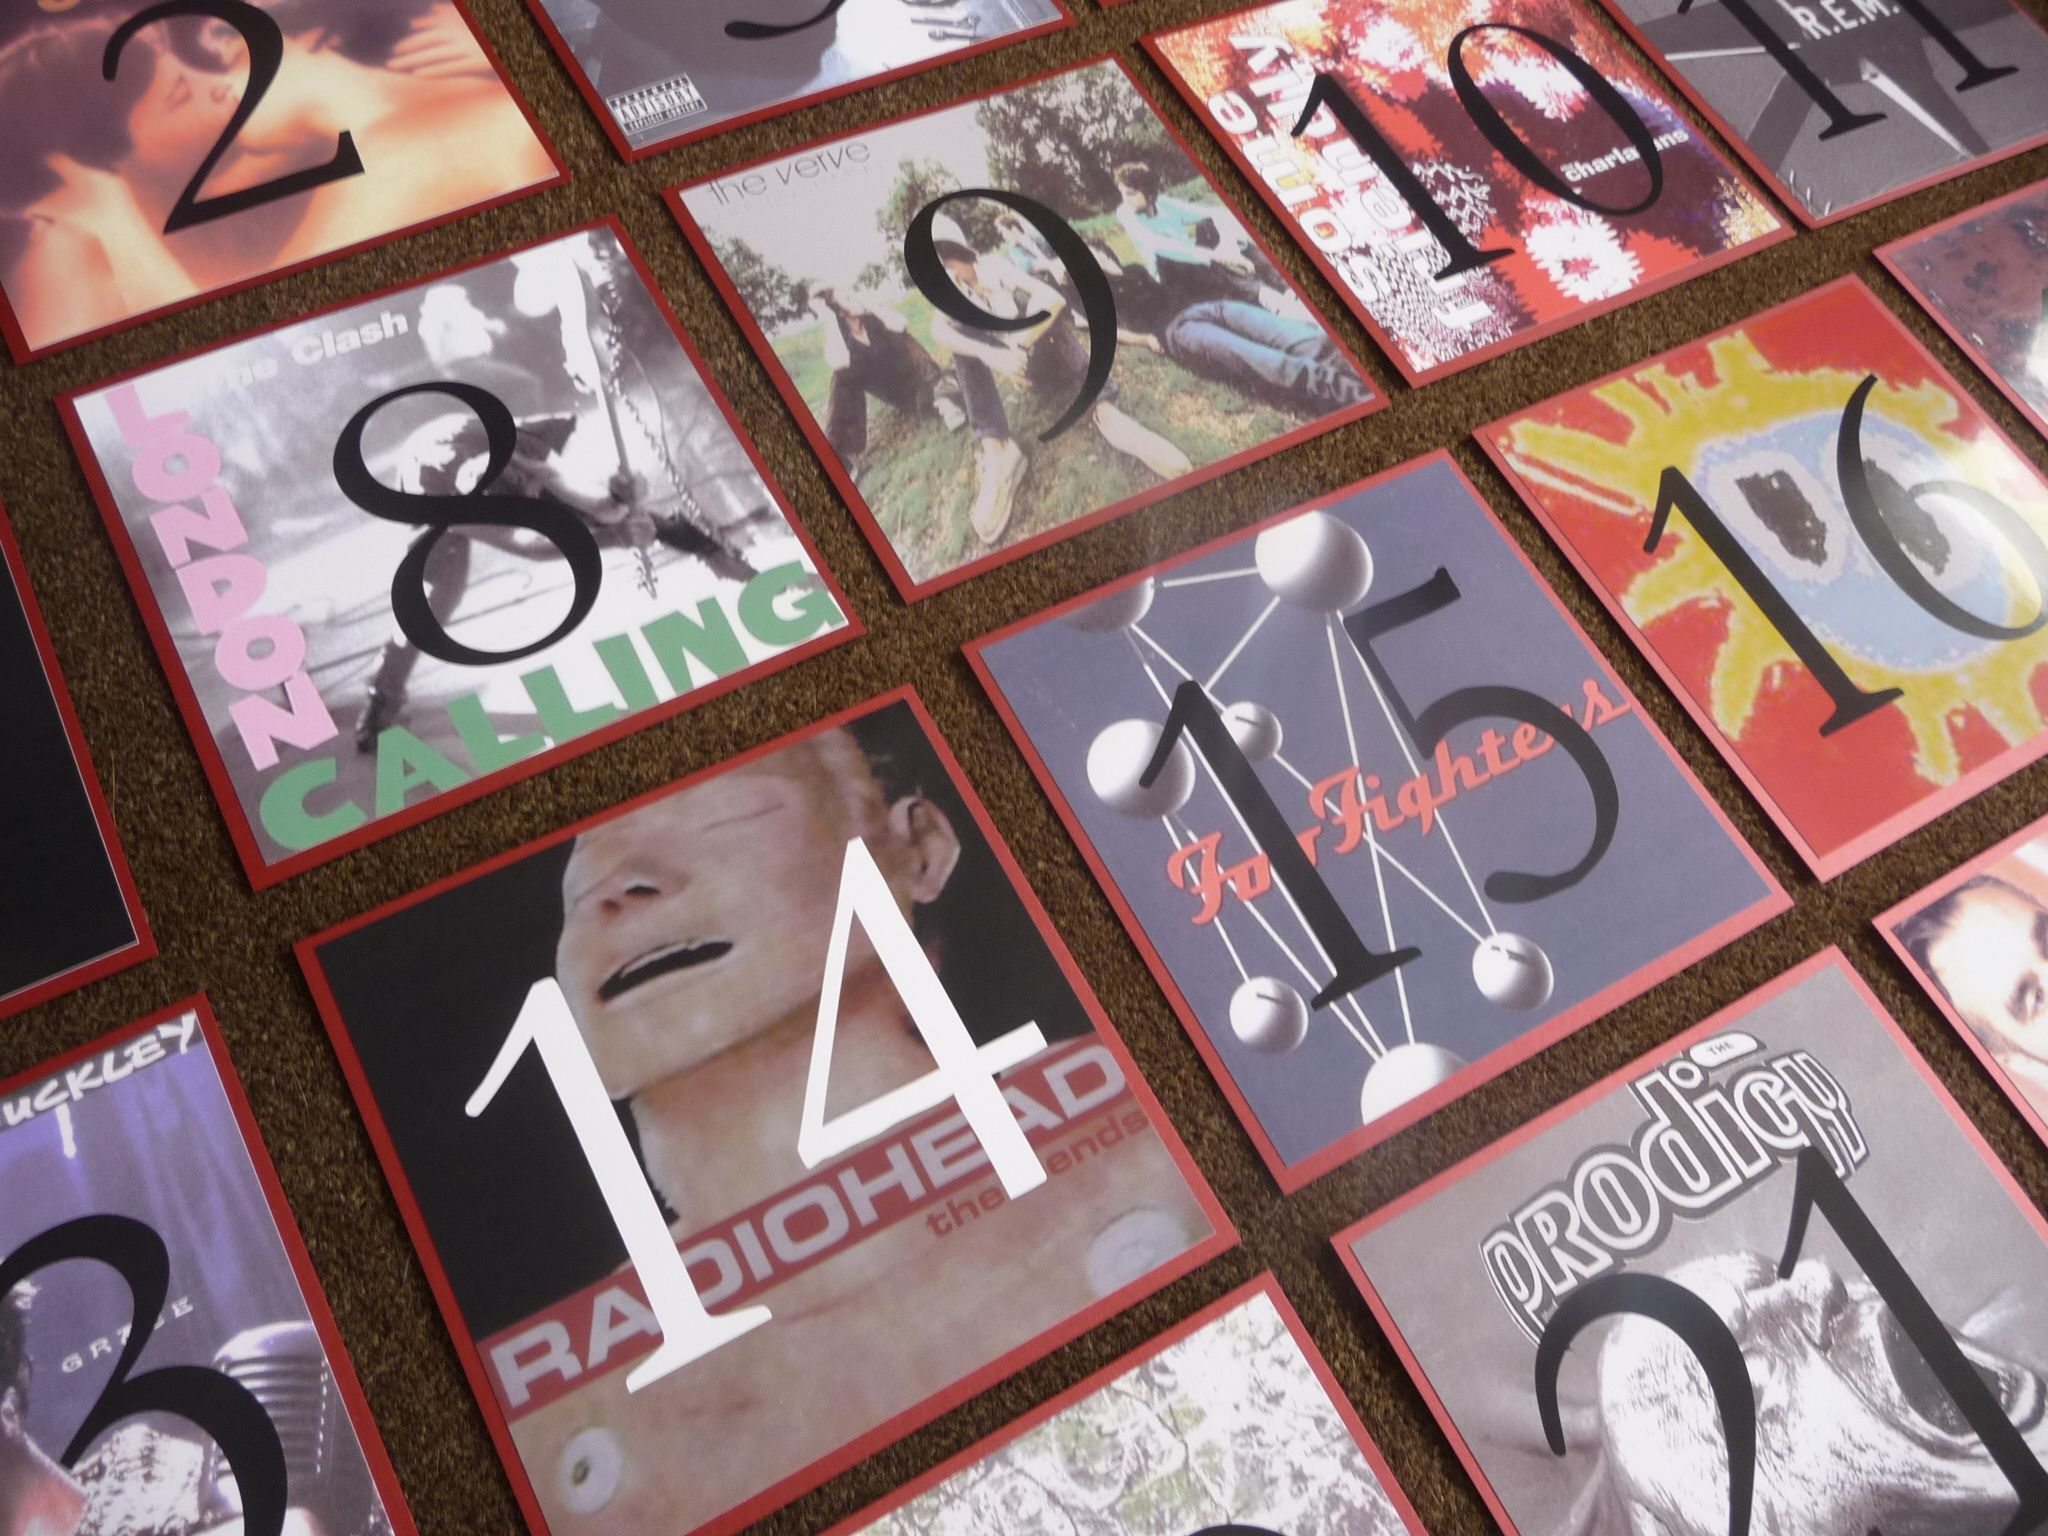 Music Album Cover theme Wedding & Special Occasion Table Names | If